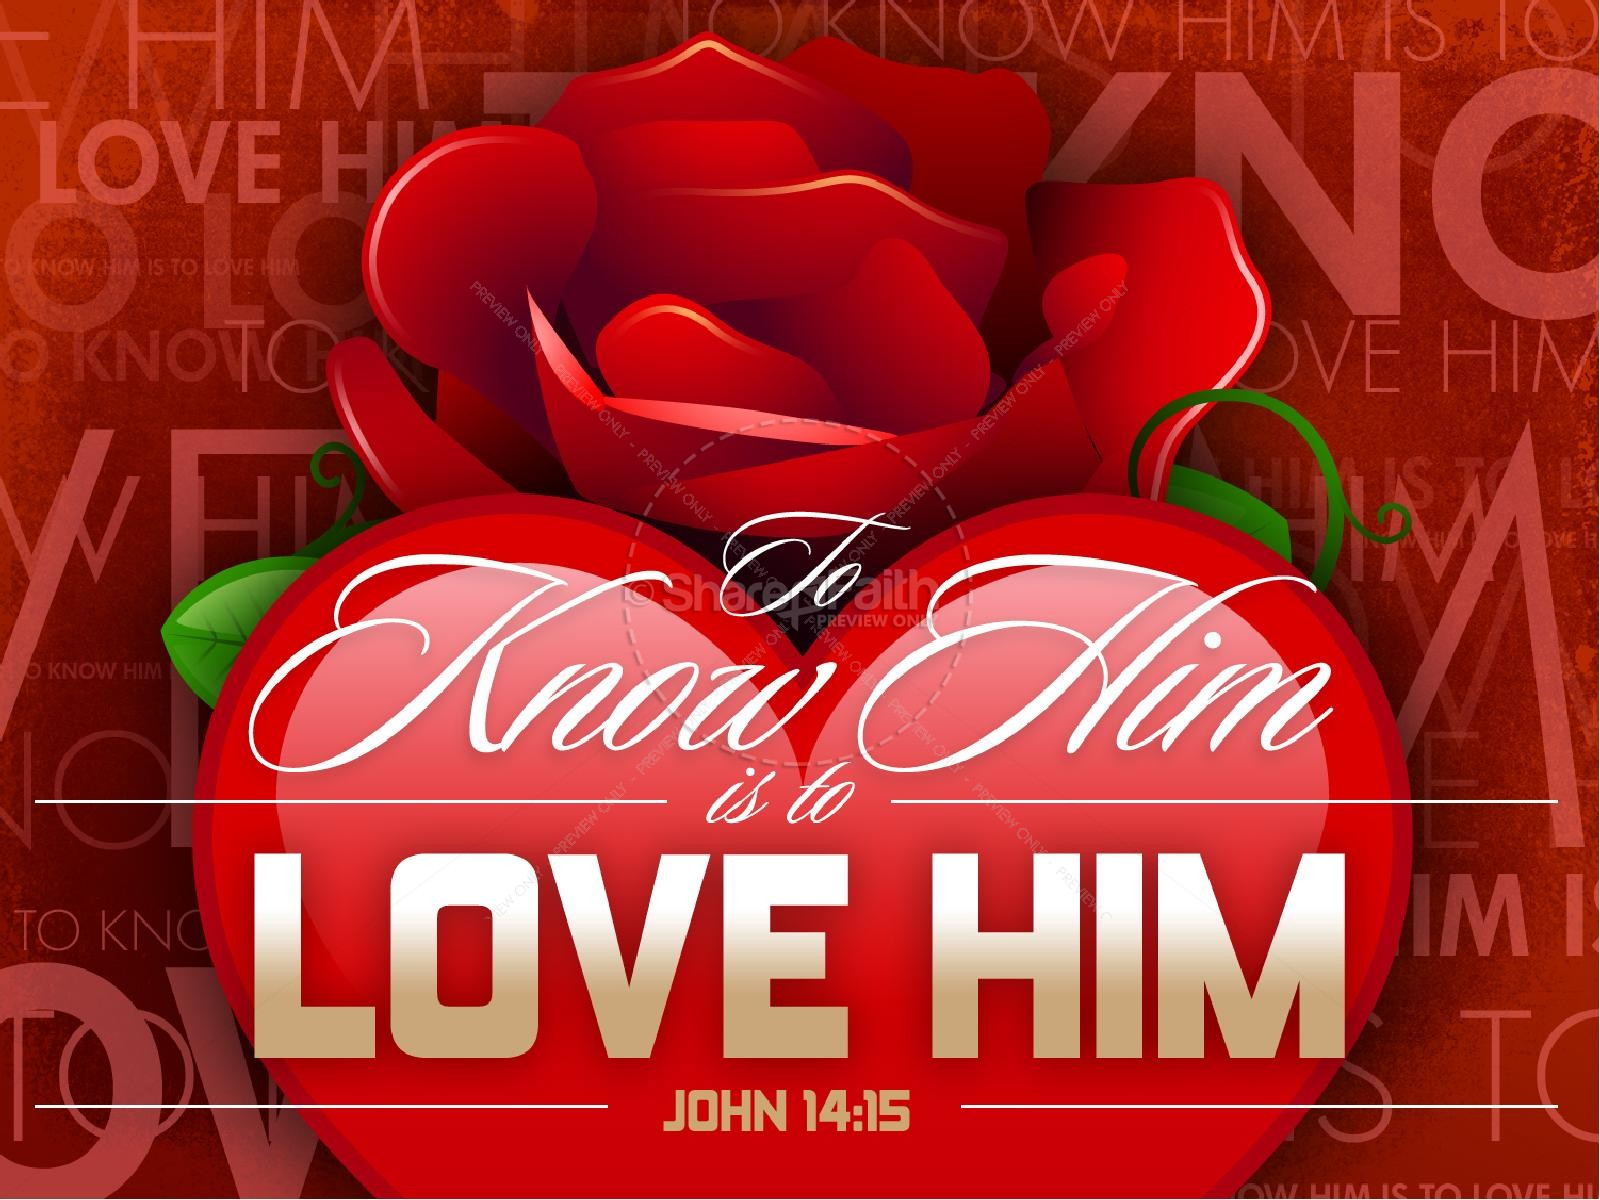 know him love him powerpoint sermon free clipart for church bulletins youth free clipart for church bulletins for april